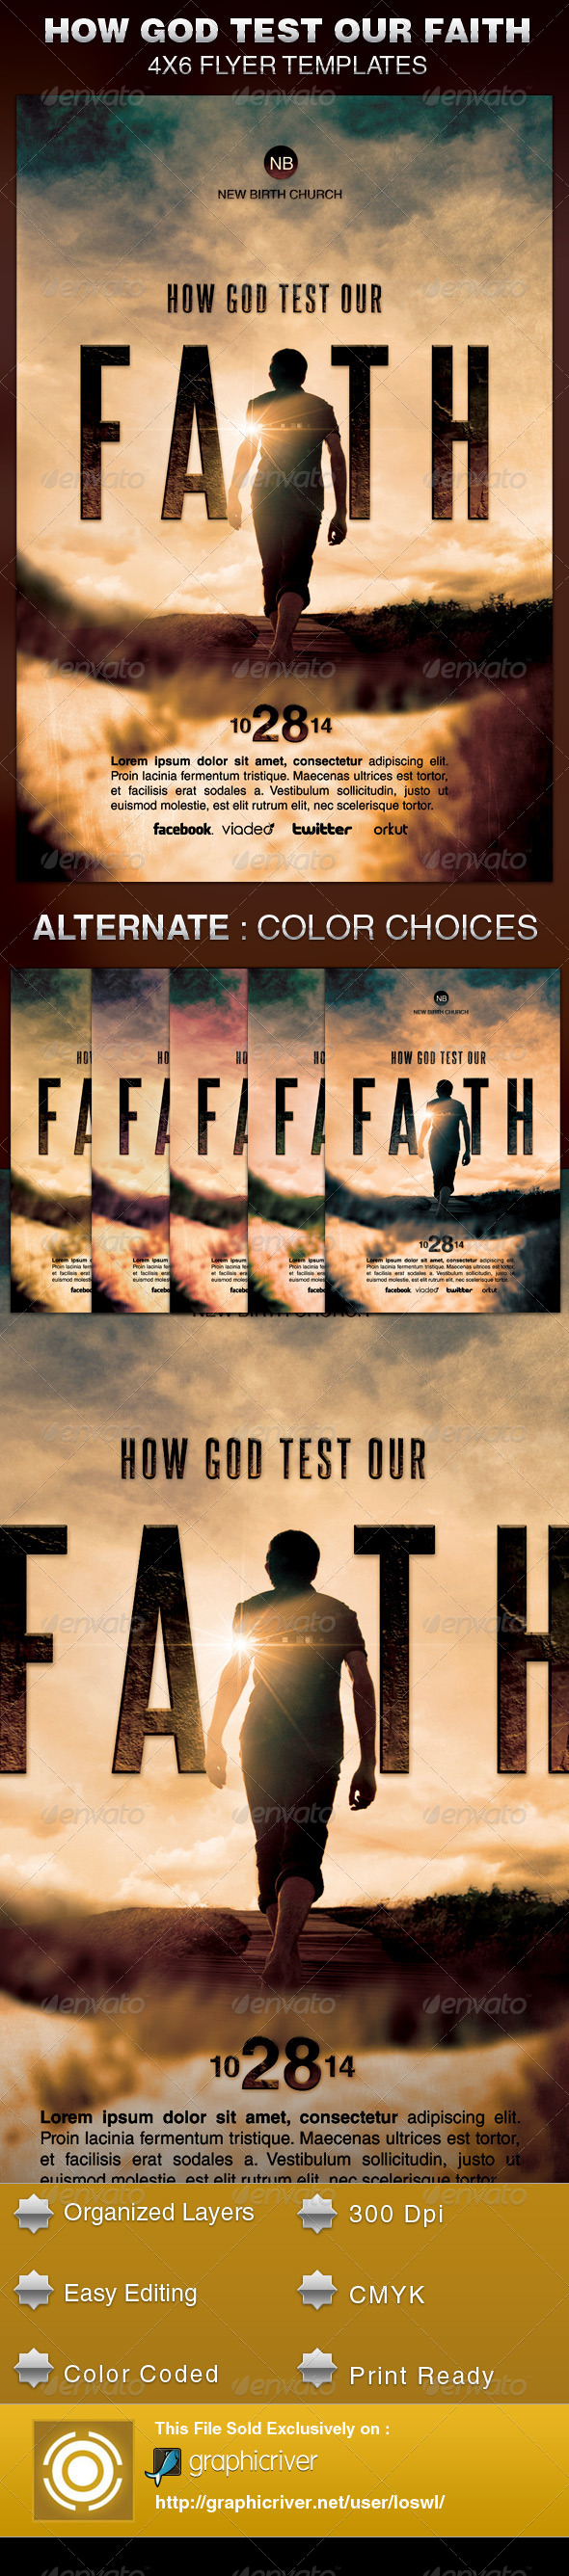 GraphicRiver How God Test Our Faith Church Flyer Template 5871876